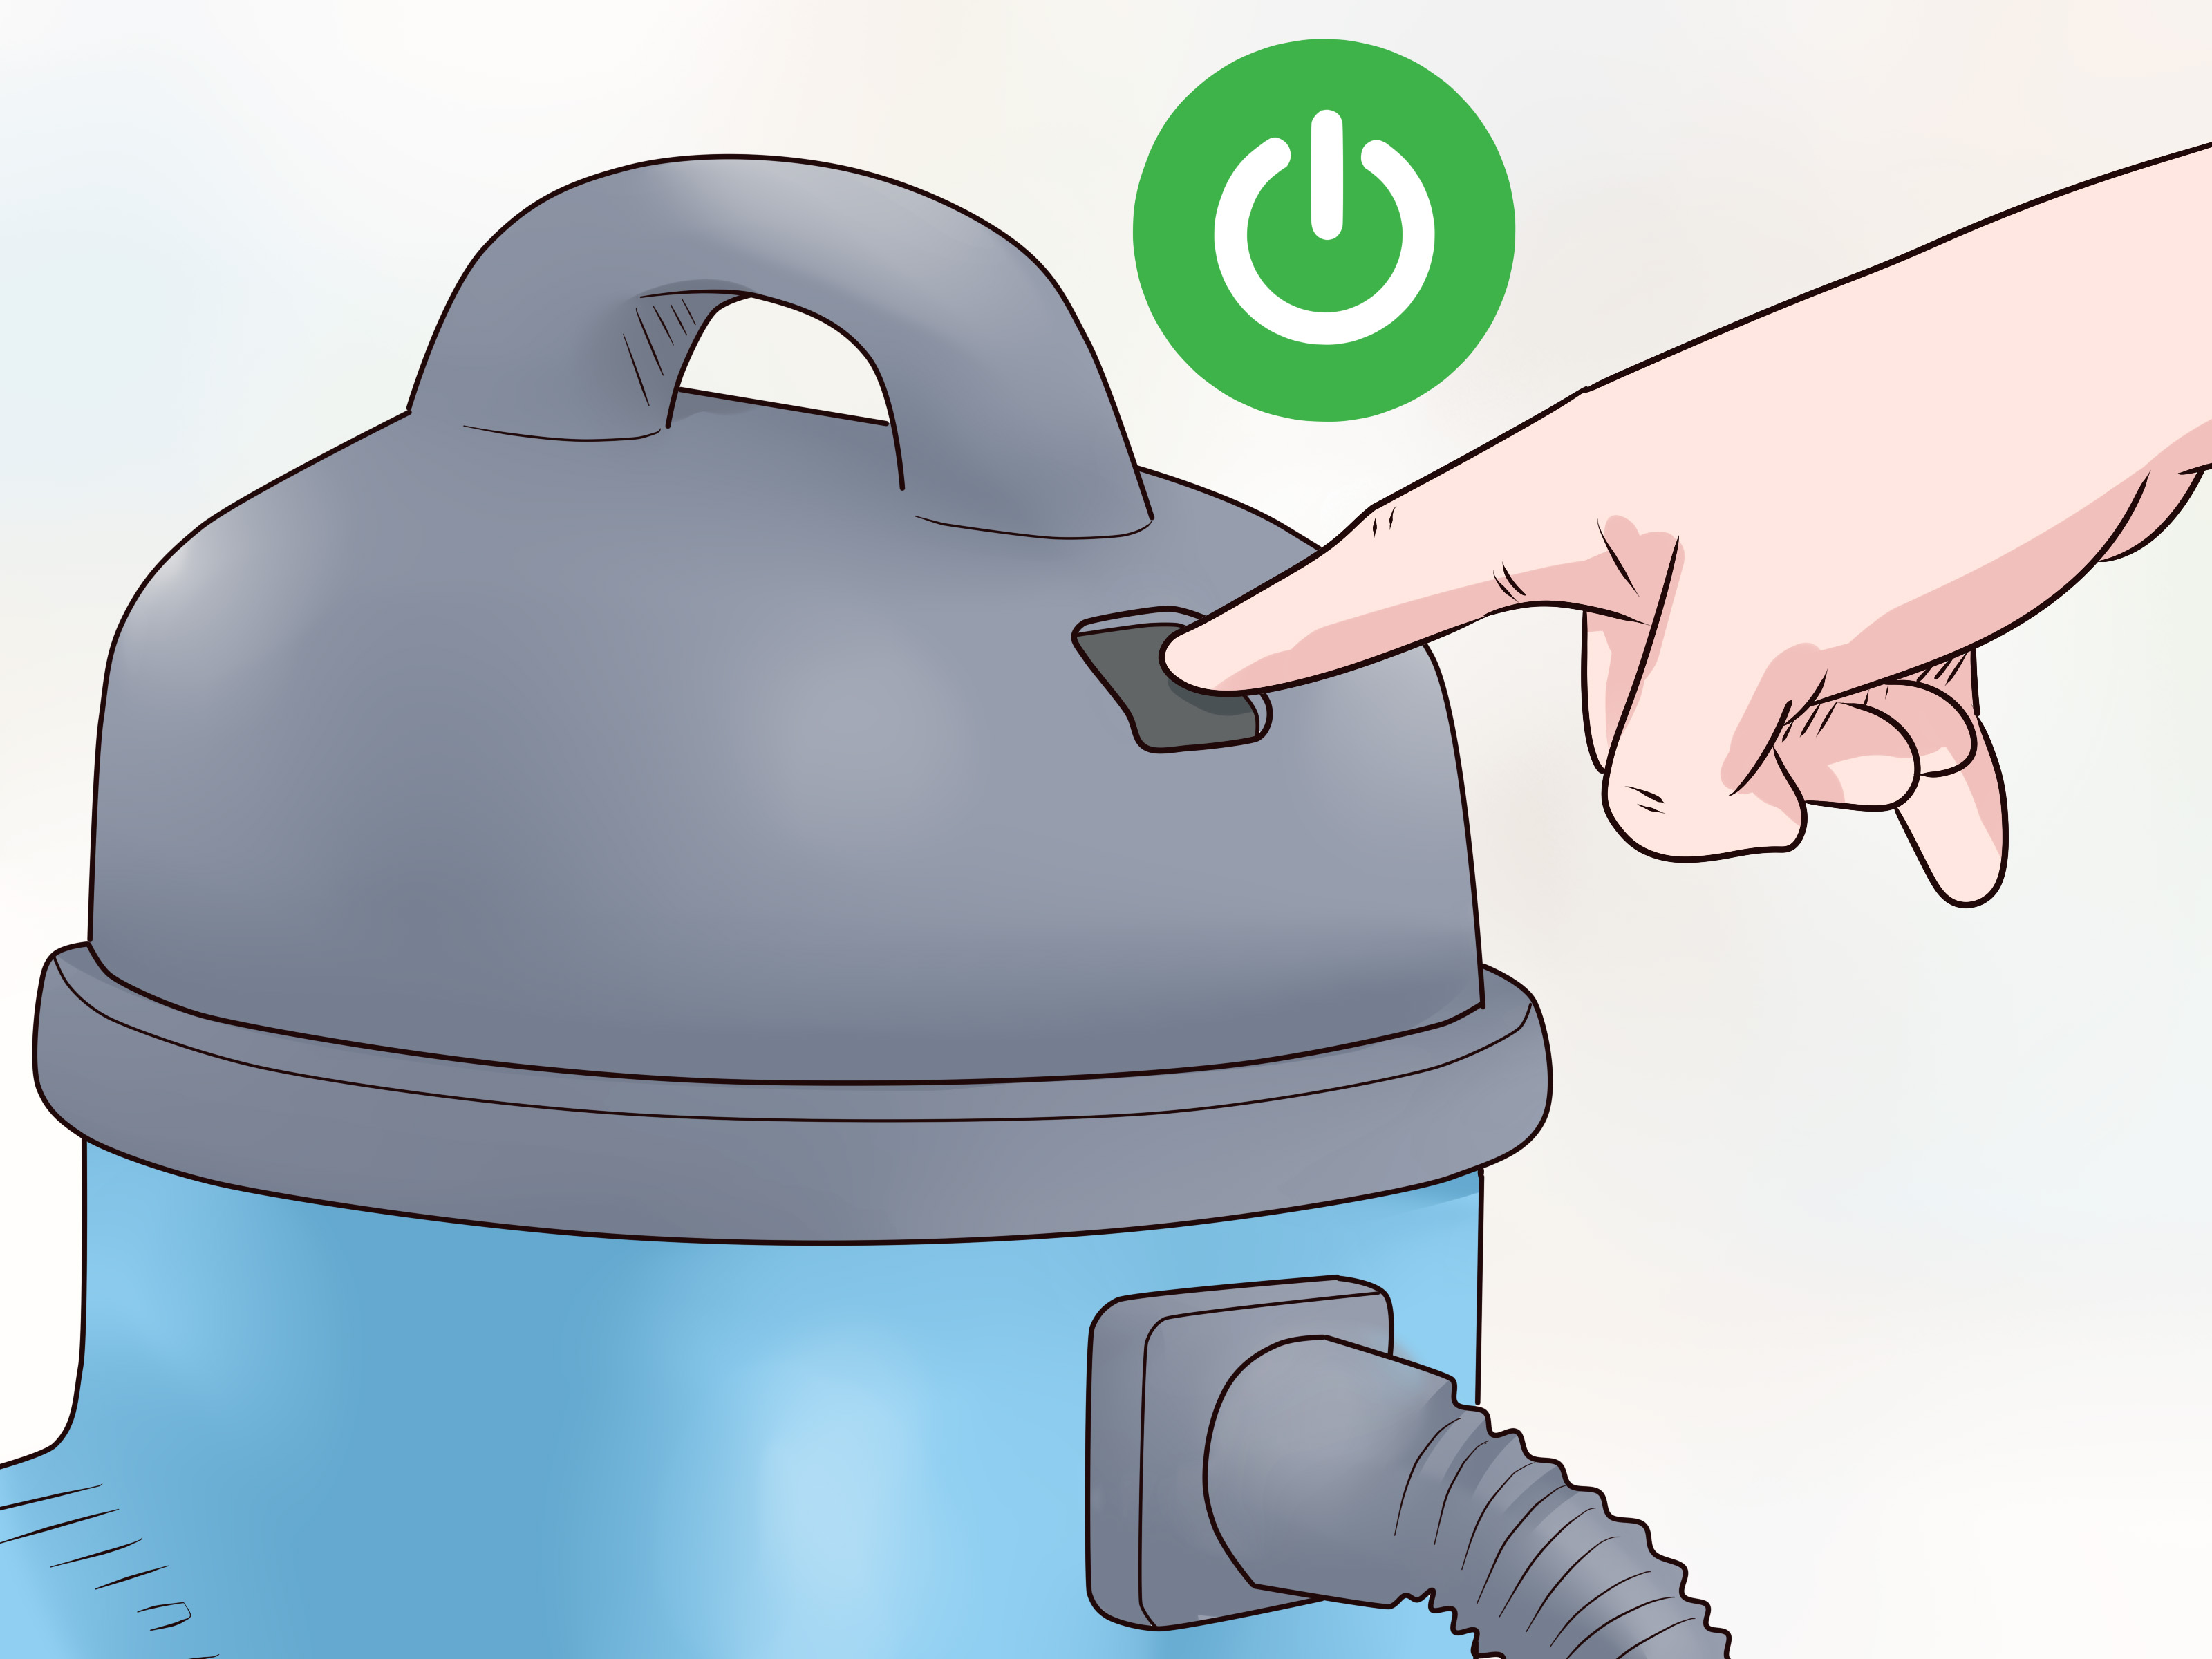 7 Ways to Unclog a Toilet - wikiHow